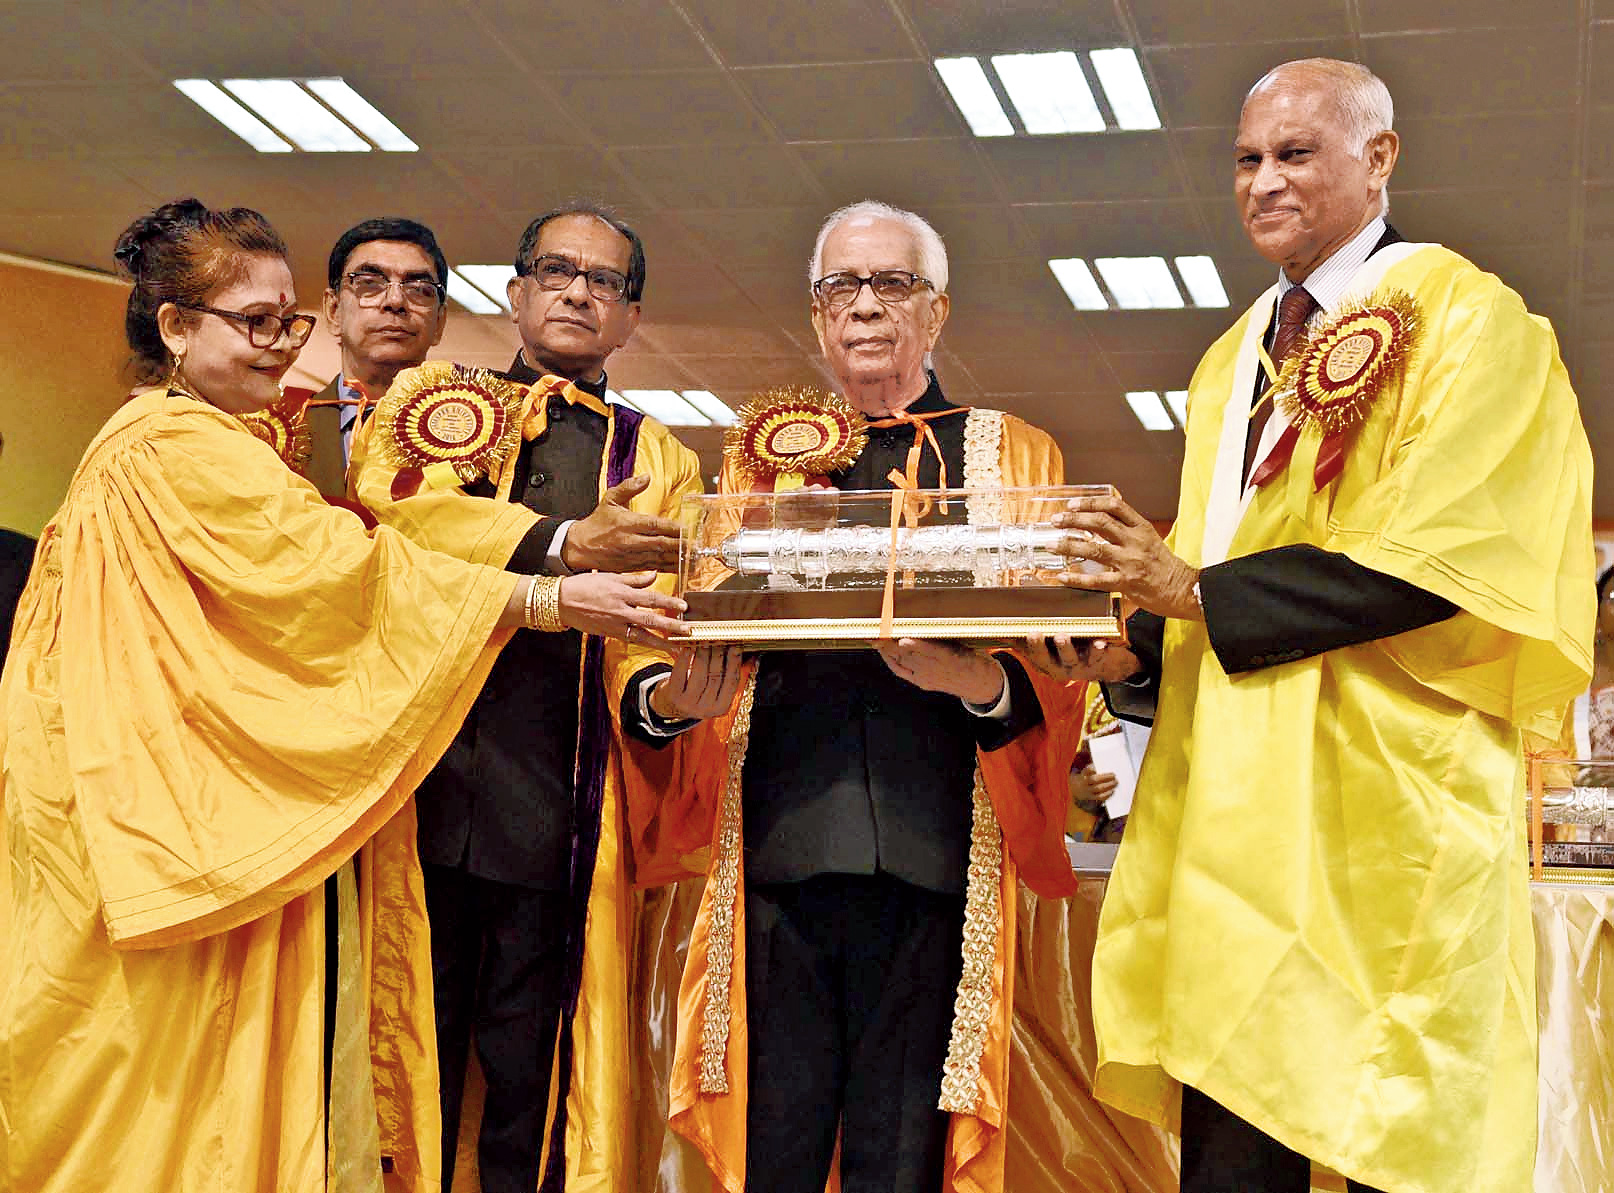 Registrar Sneha Manju Basu, controller of examinations Satyaki Bhattacharya, vice-chancellor Suranjan Das and governor Keshari Nath Tripathi with Mammen Chandy, the director of Tata Medical Center and recipient of an honorary DSc at the JU convocation.